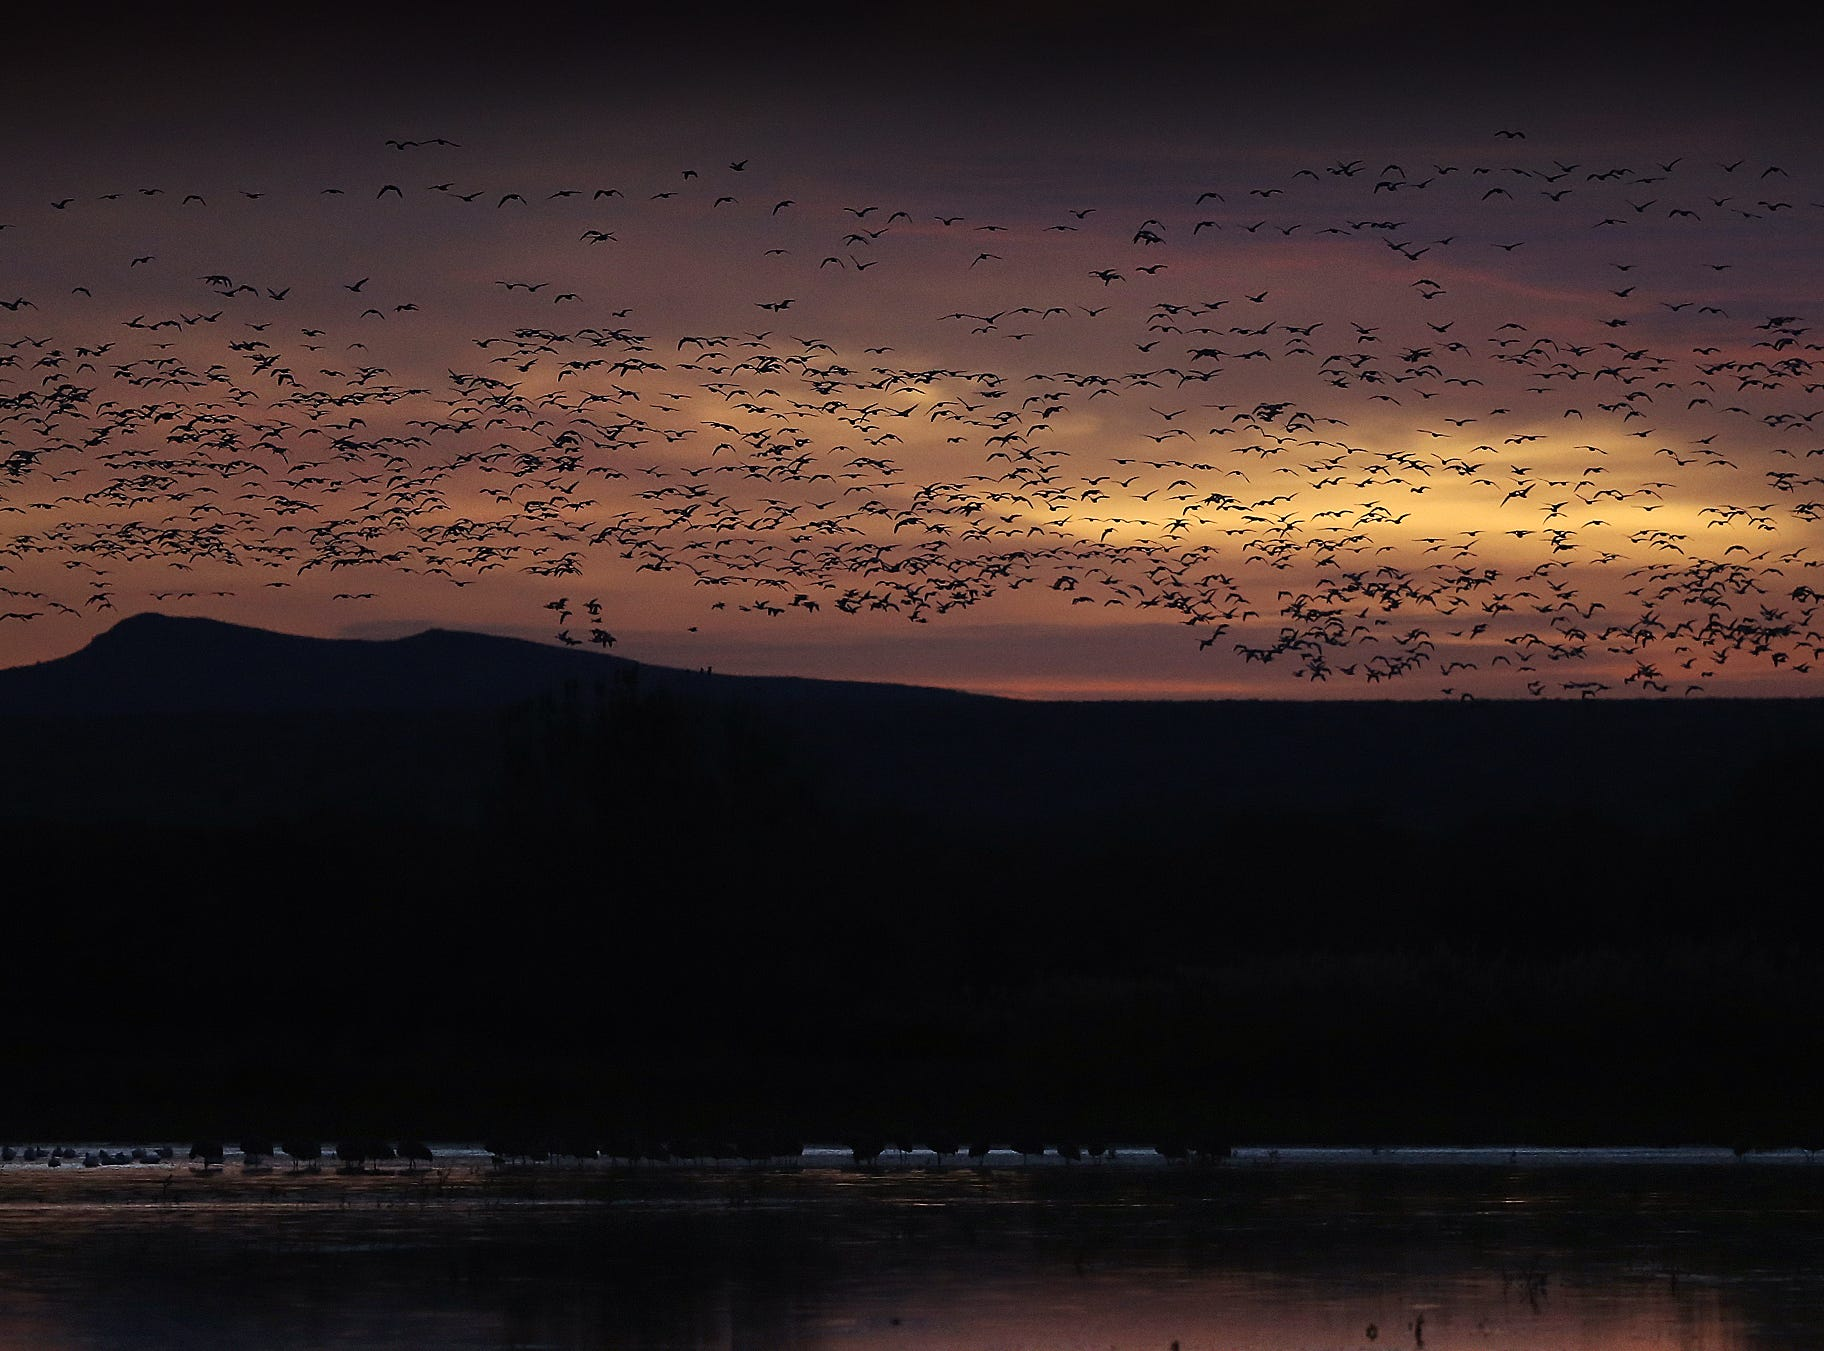 Sandhill Cranes fill the sunrise during their mass ascension in the wee hours of the morning. About 15,000 cranes fill the sky as the sun rises at Bosque del Apache National Wildlife Refuge.